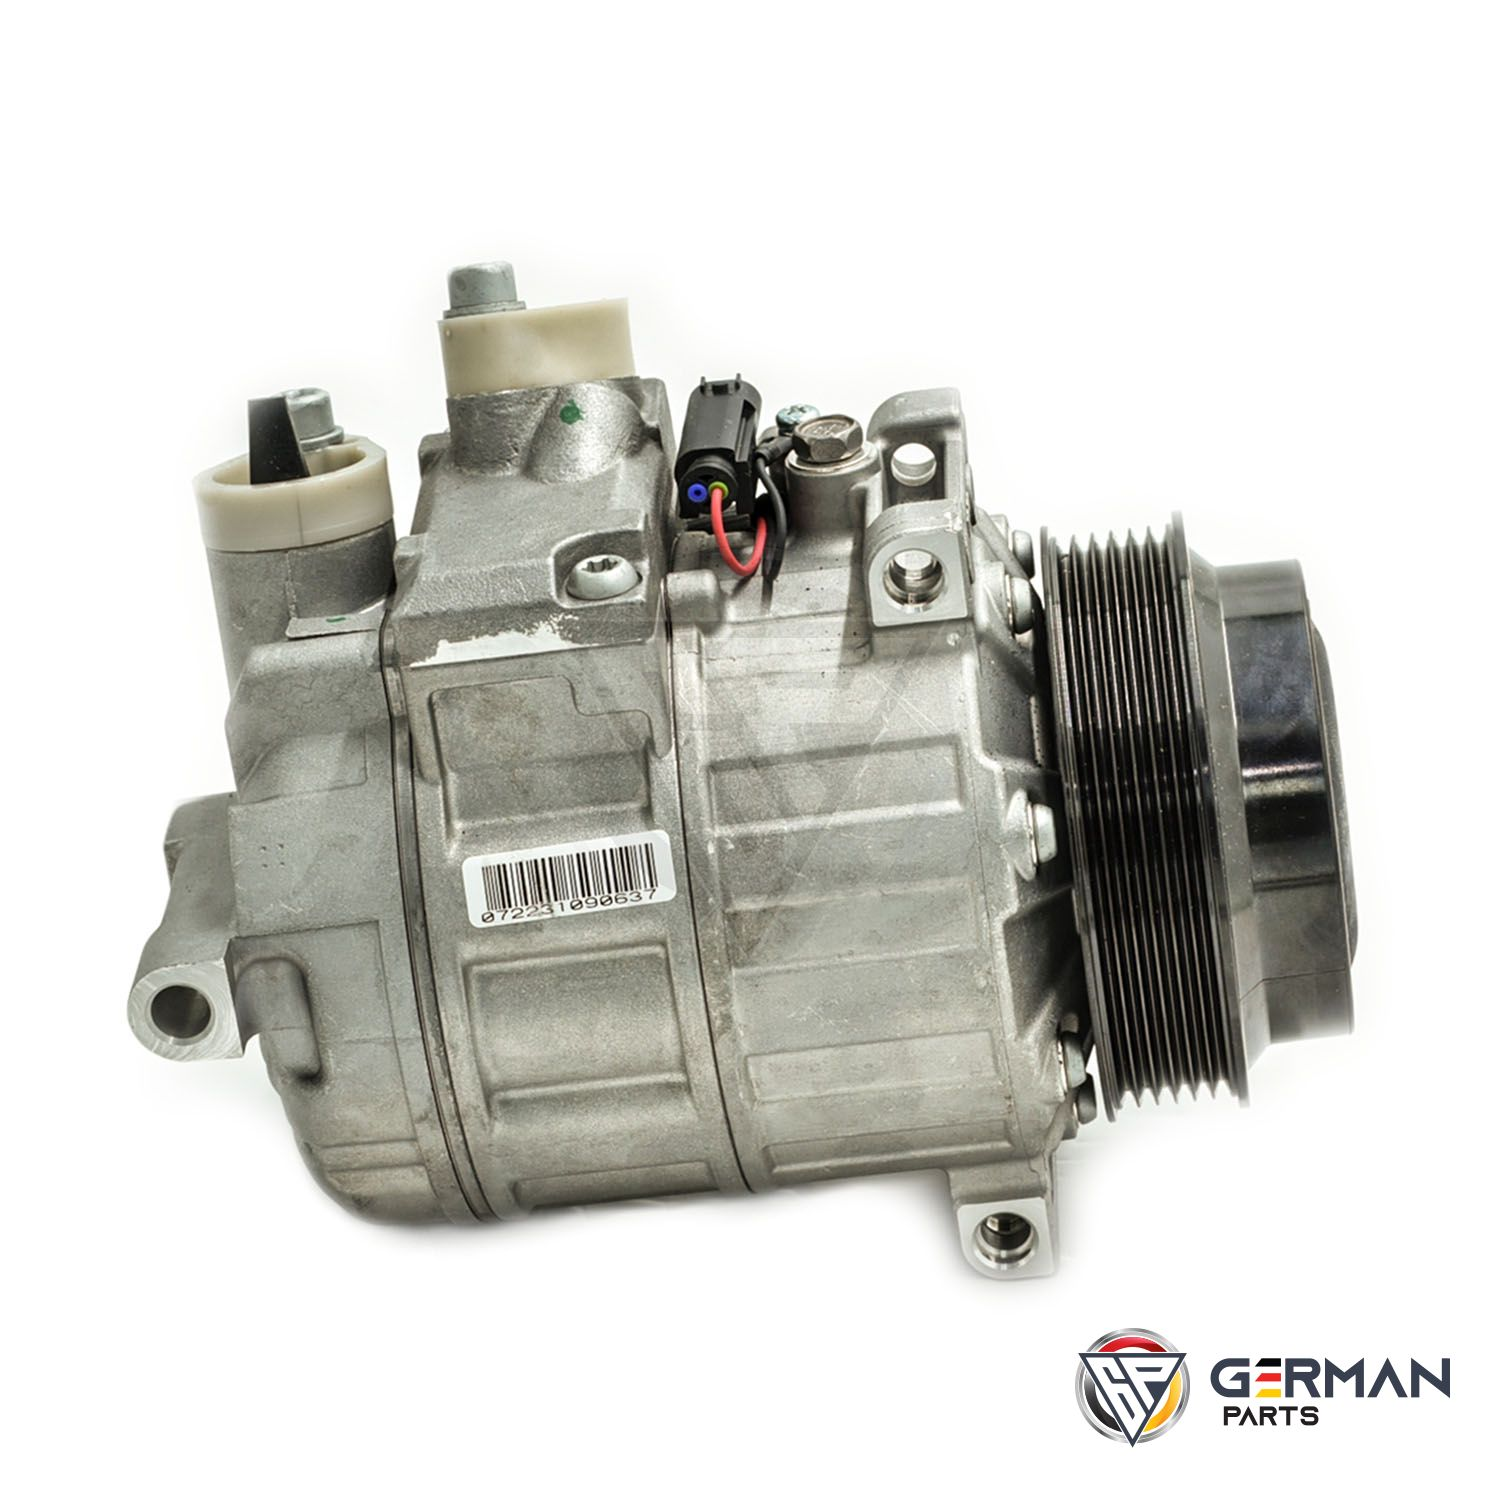 Buy Valeo Ac Compressor 0002307211 - German Parts